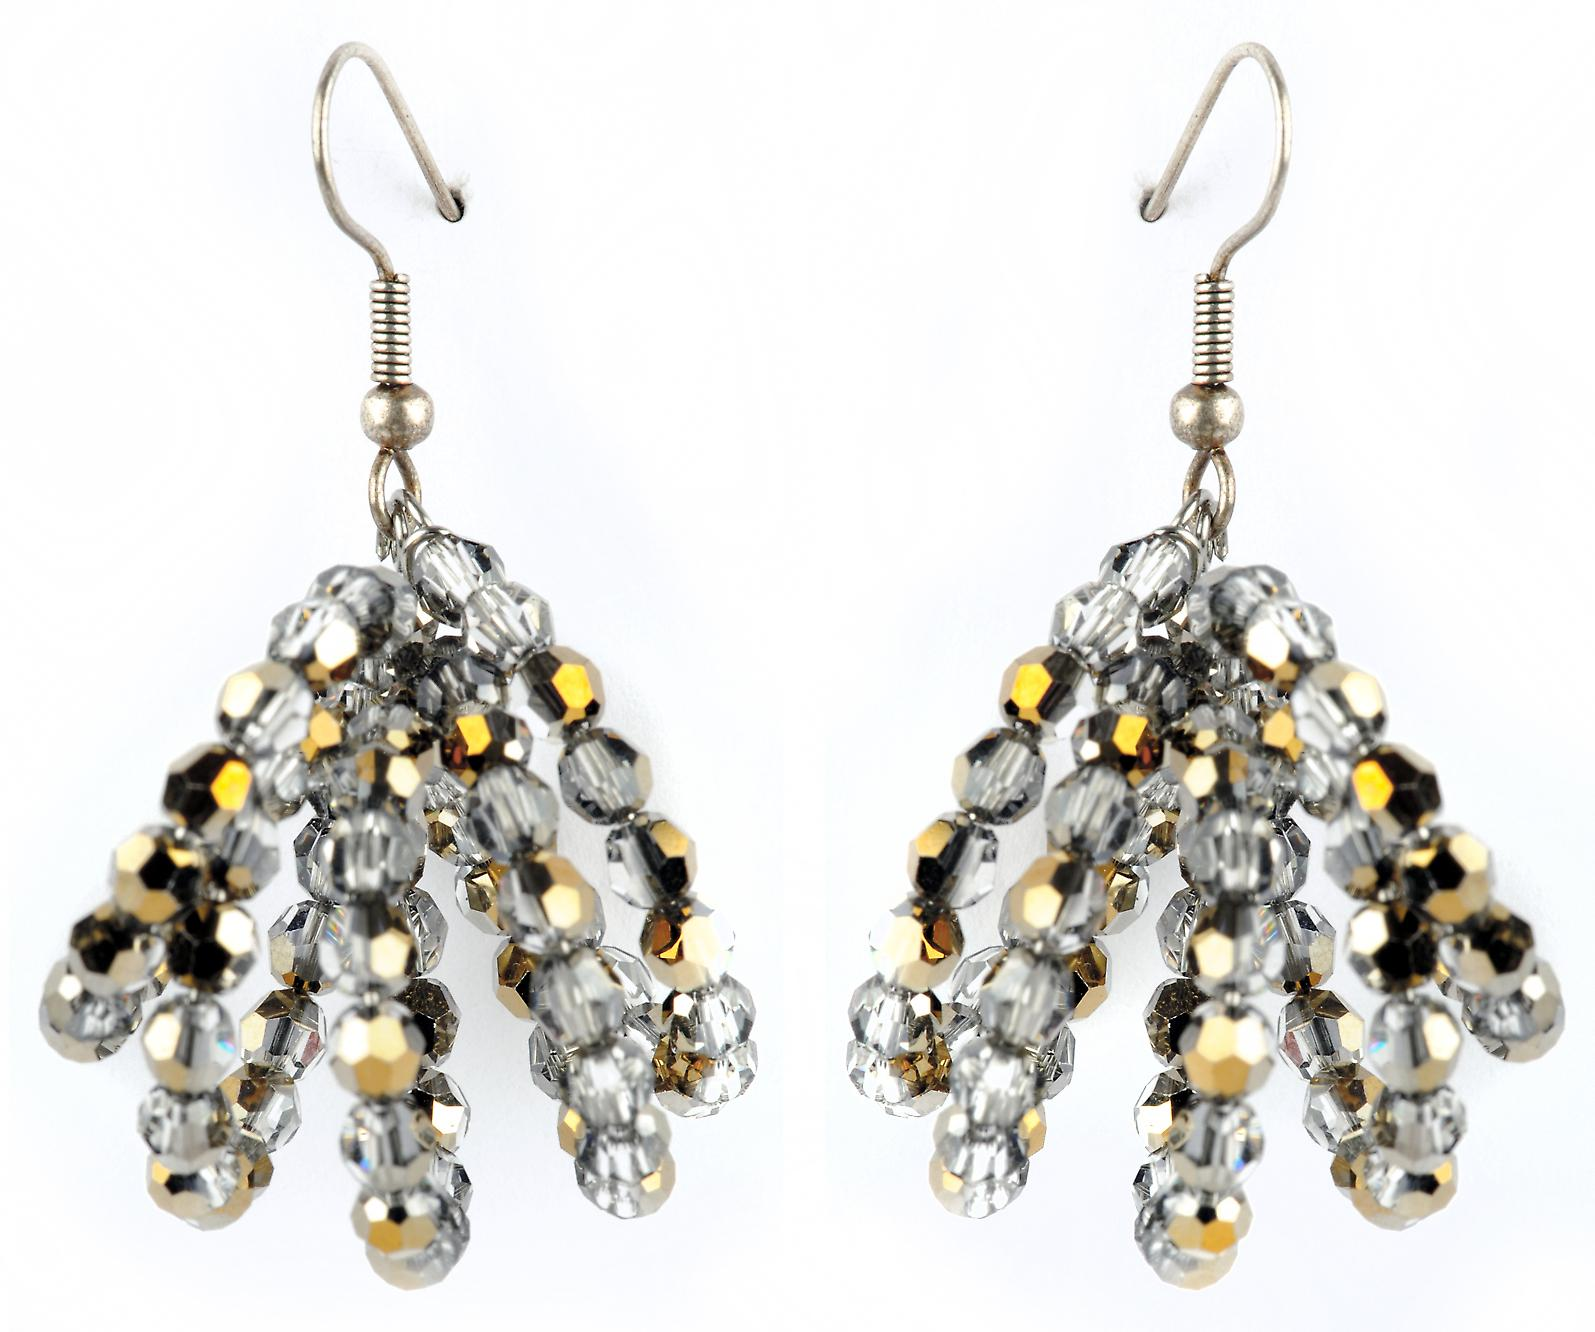 Waooh - jewelry - WJ0755 - earrings with Rhinestone Swarovski silver Chrome Iridium - mount silver